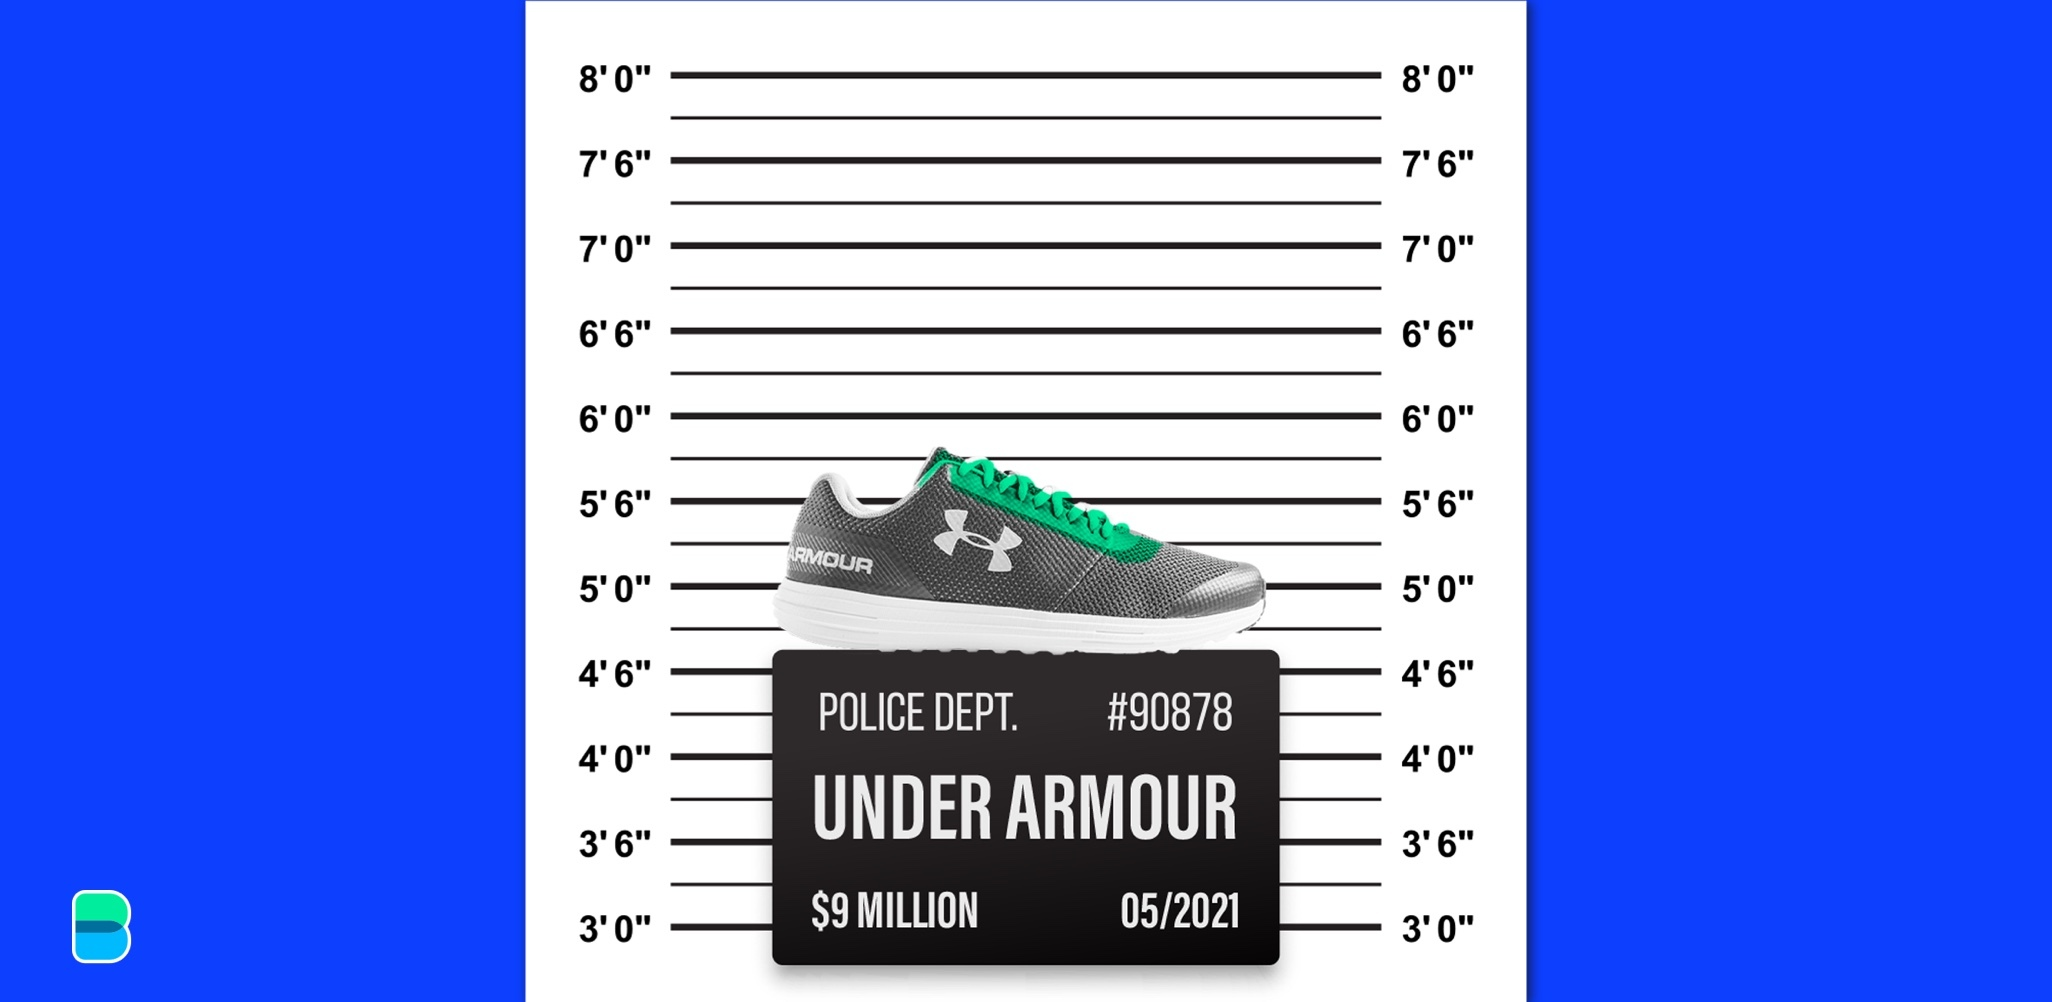 Under Armour busted